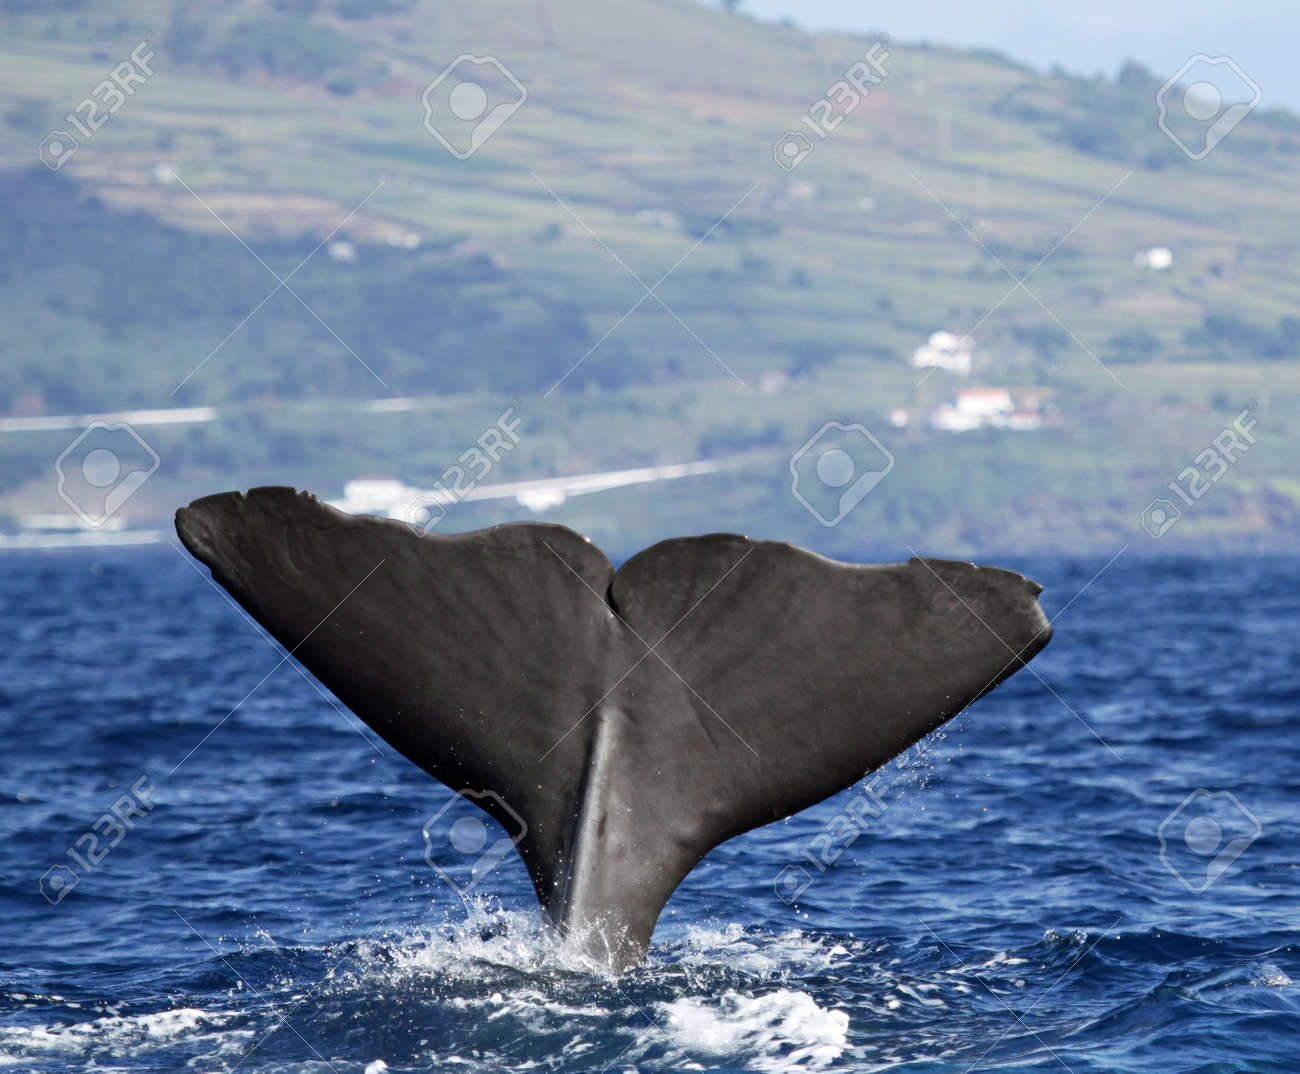 whale images u0026 stock pictures royalty free whale